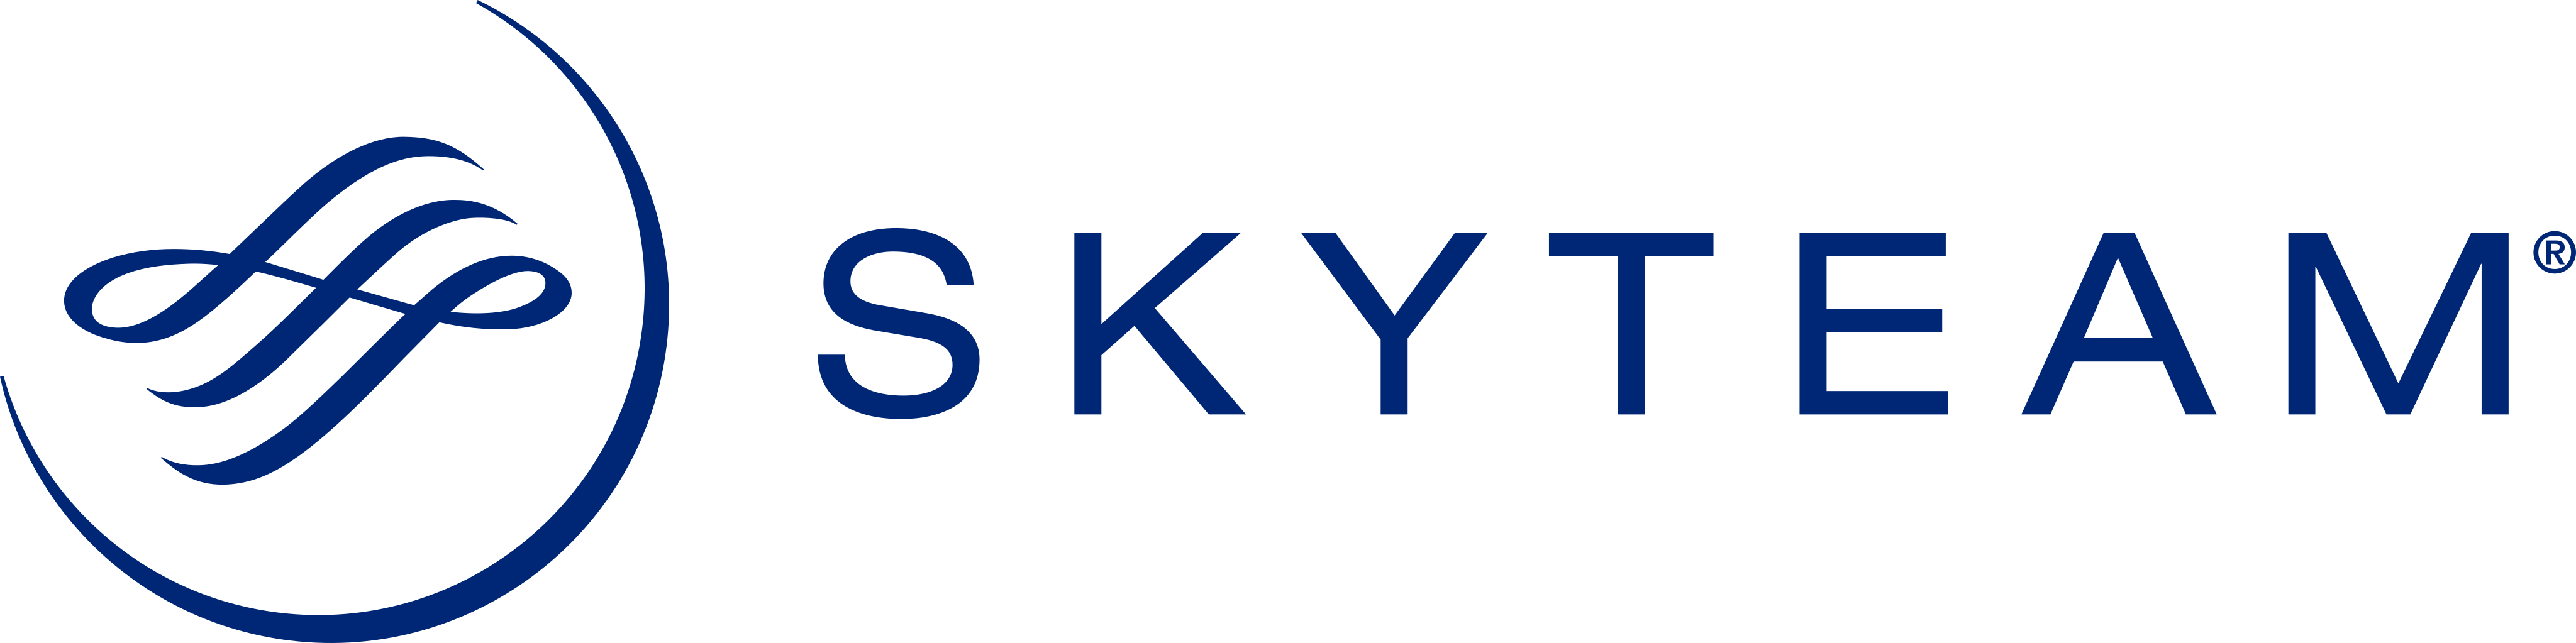 skyteam logo - Skyteam Logo